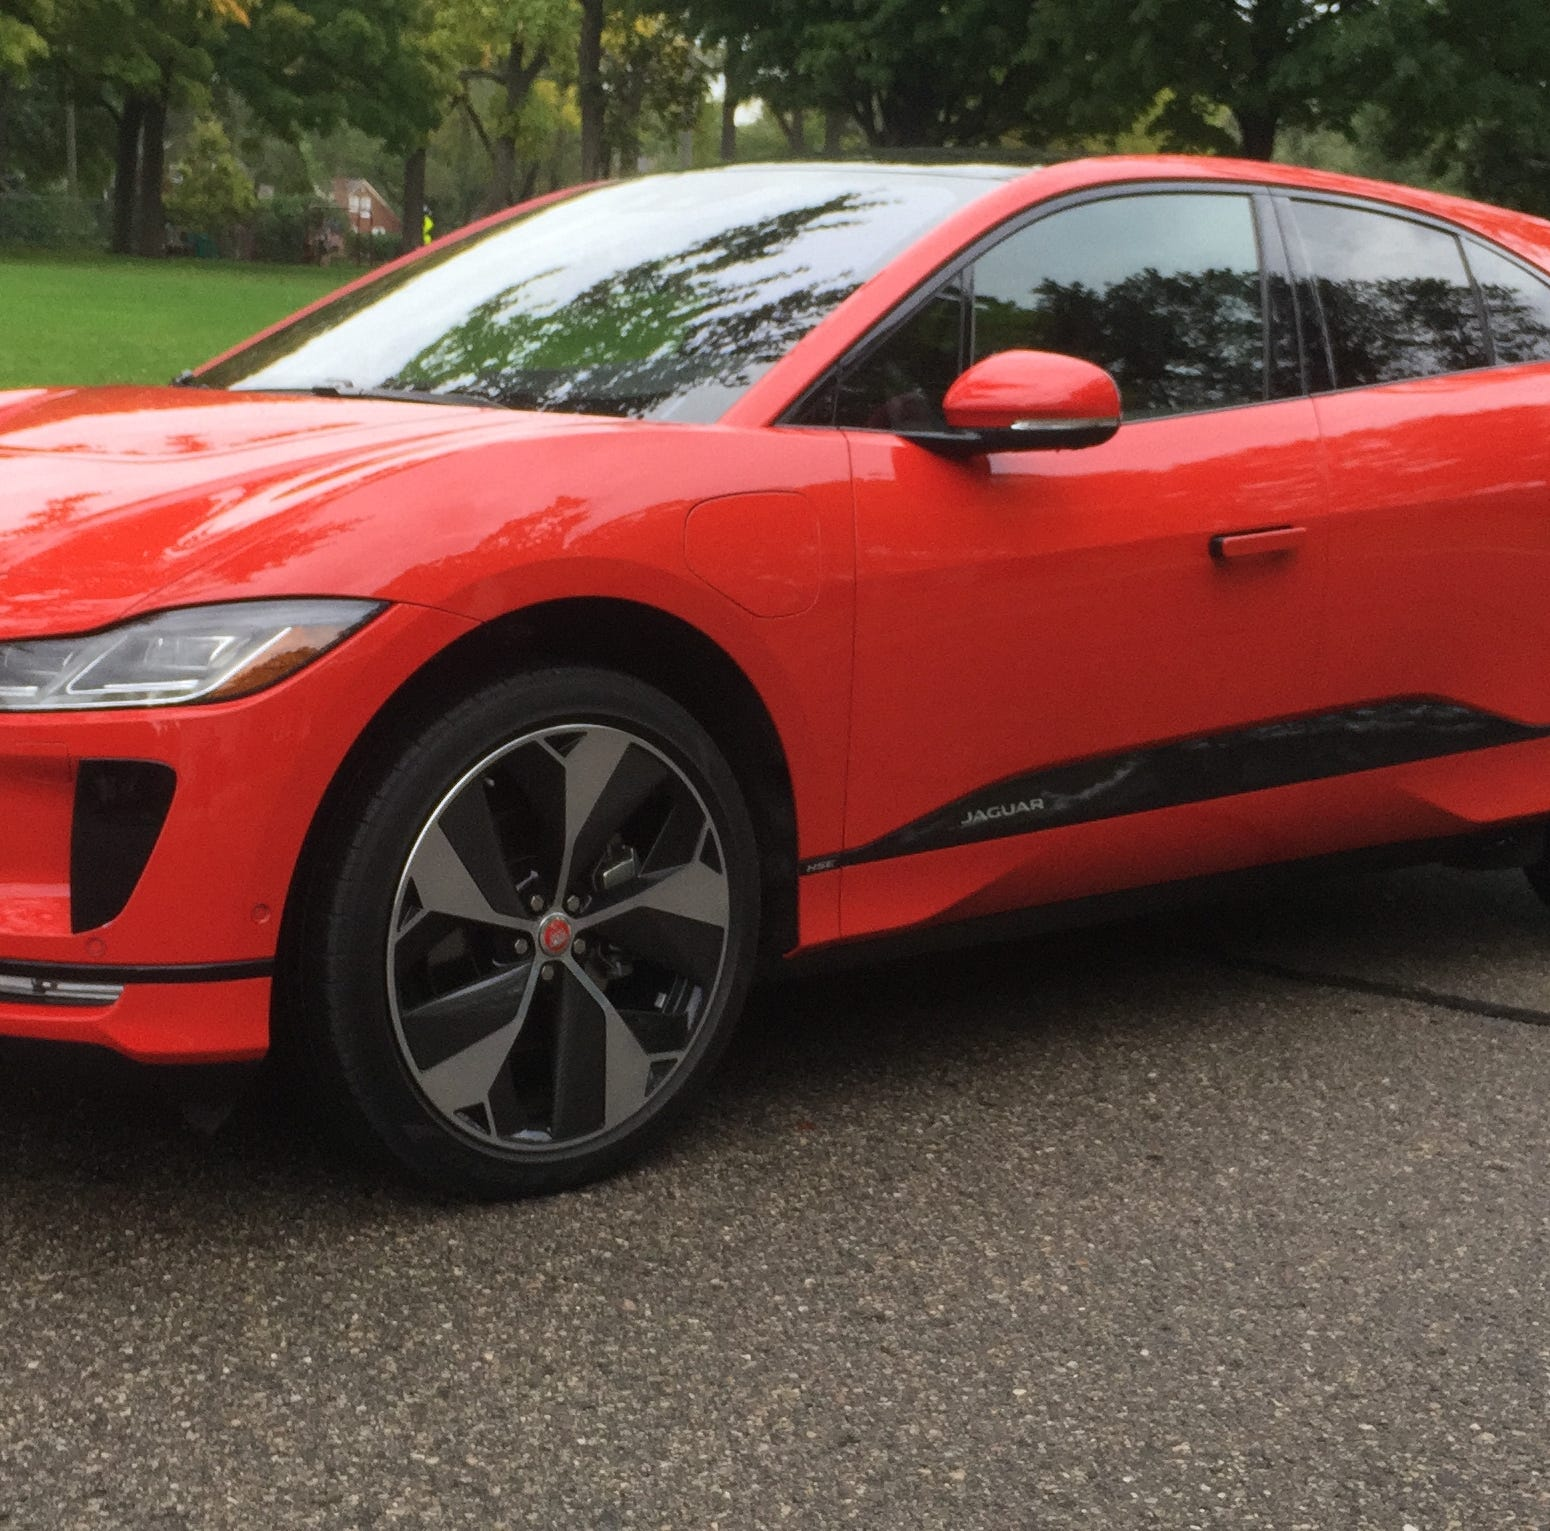 When is a good electric car not a good car? Meet the 2018 Jaguar I-Pace